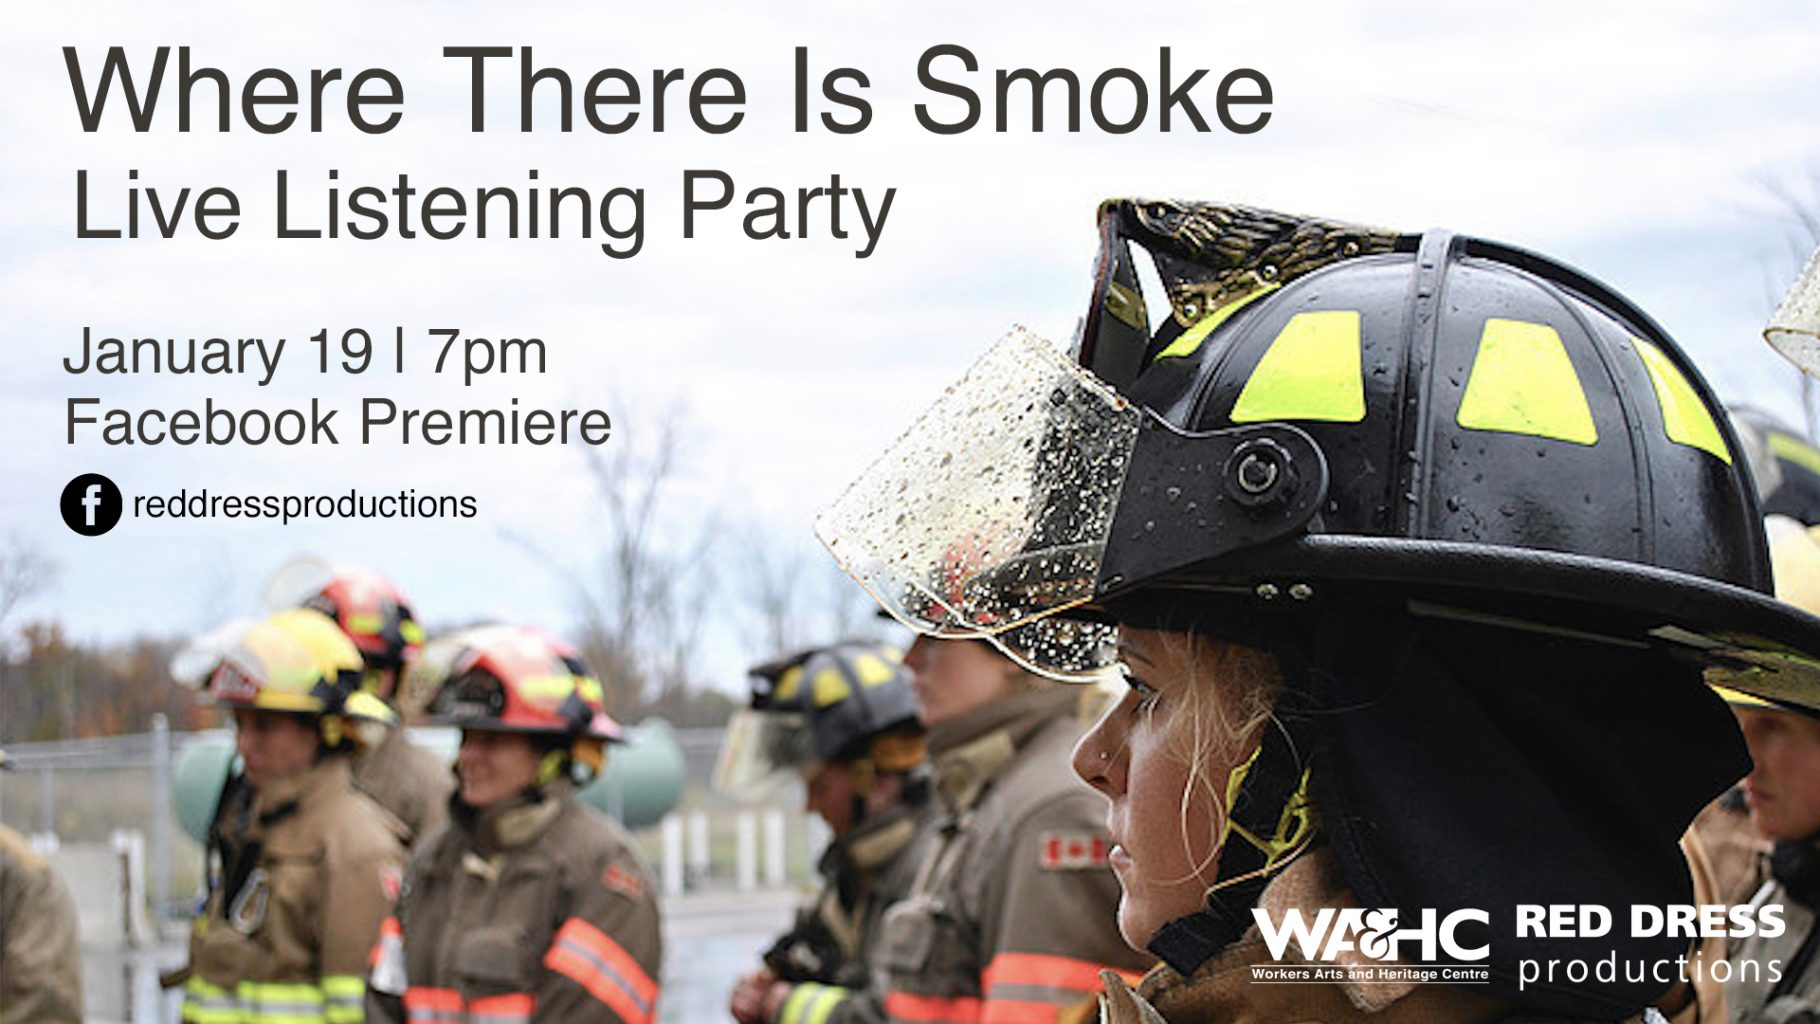 """Profile photograph of a female firefighter in full gear - text over image reads """"Where There Is Smoke, Live Listening Party, January 19 